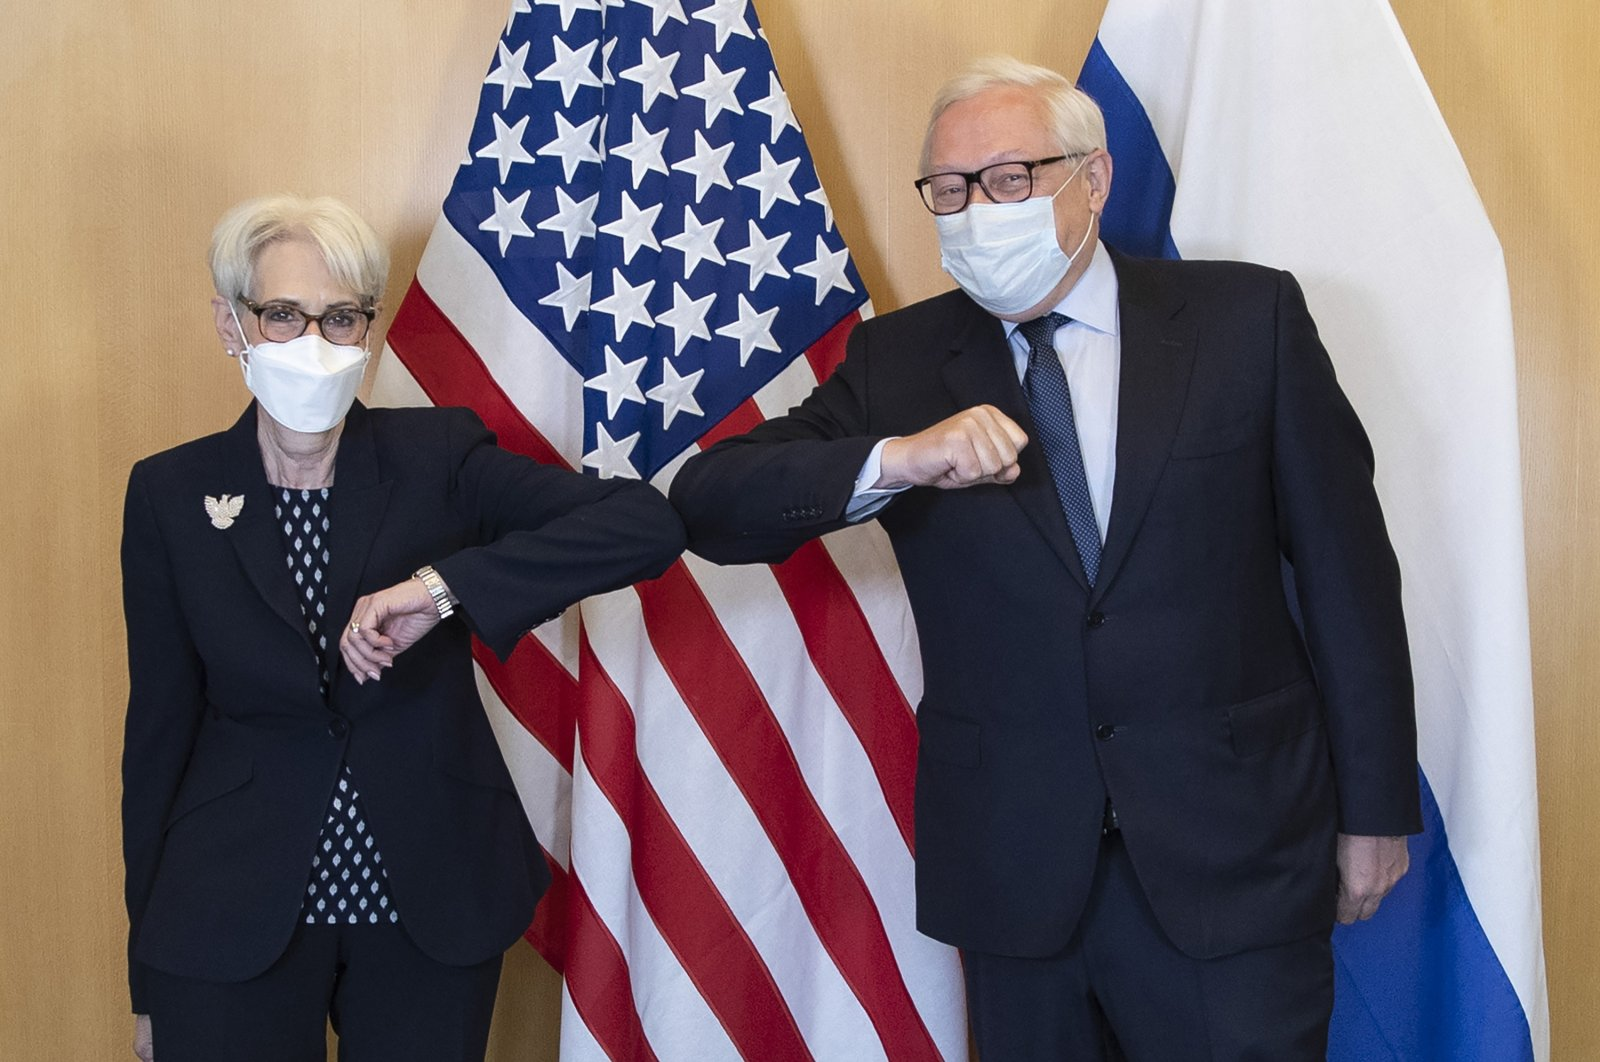 U.S. Deputy Secretary of State Wendy Sherman and Russian Deputy Foreign Minister Sergey Ryabkov greet each other at the start of their meeting in Geneva, Switzerland, July 28, 2021. (US Mission Geneva via AP)